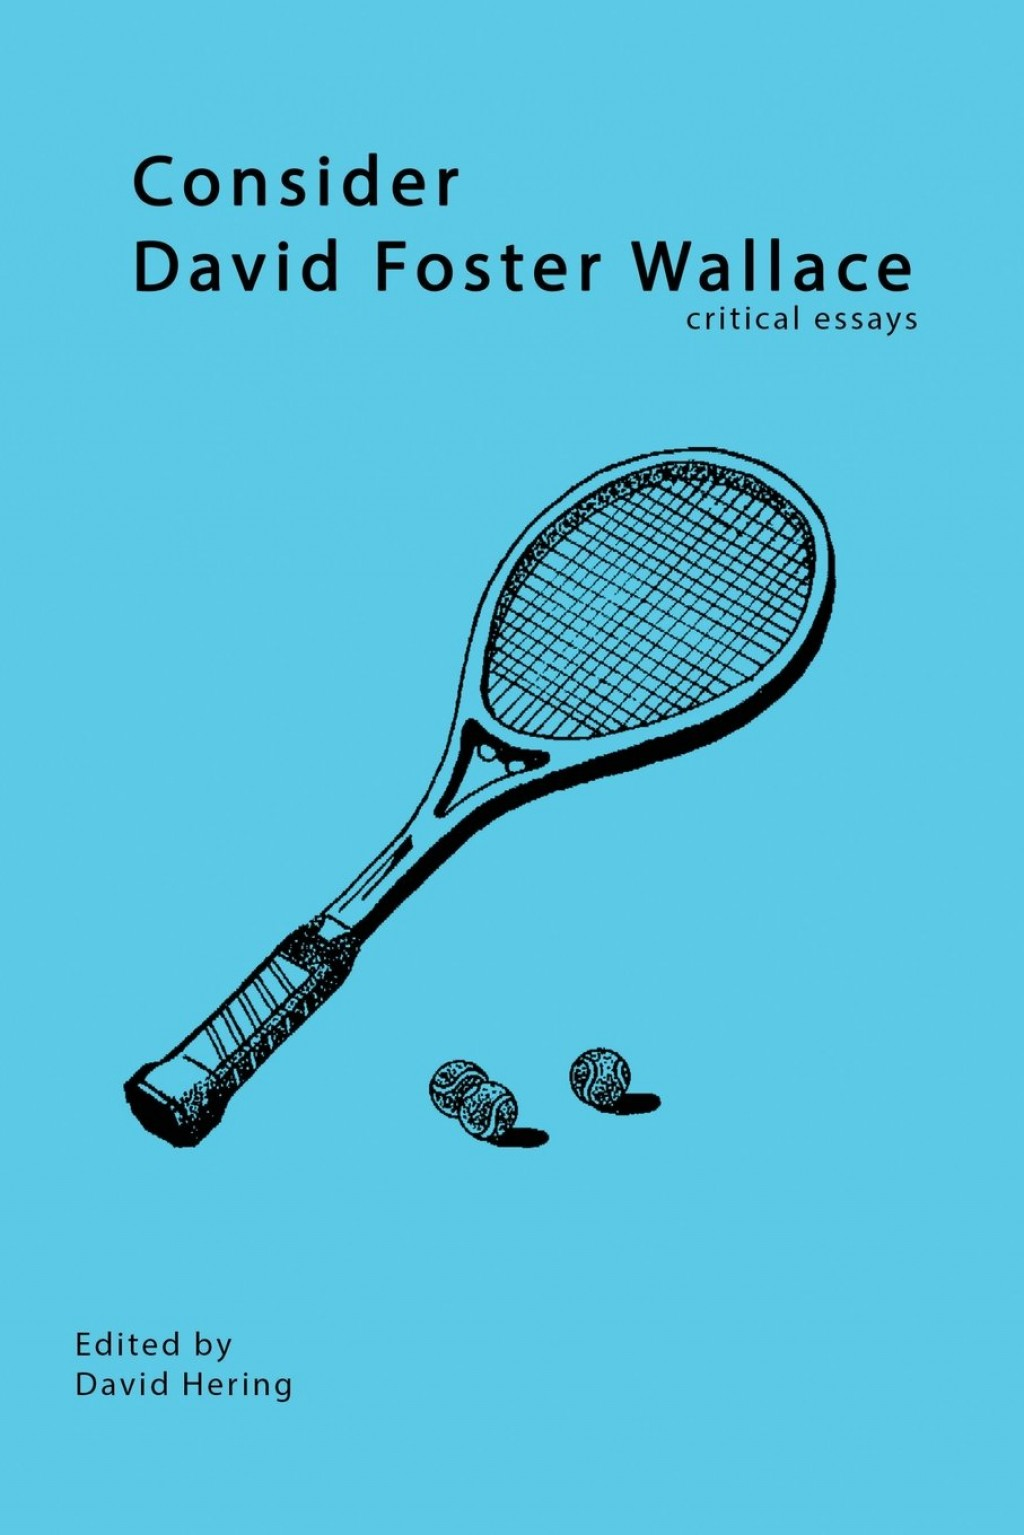 003 61ghzfb 6bl Essay Example David Foster Wallace Formidable Essays Amazon And The Long Thing New On Novels Cruise Ship Large